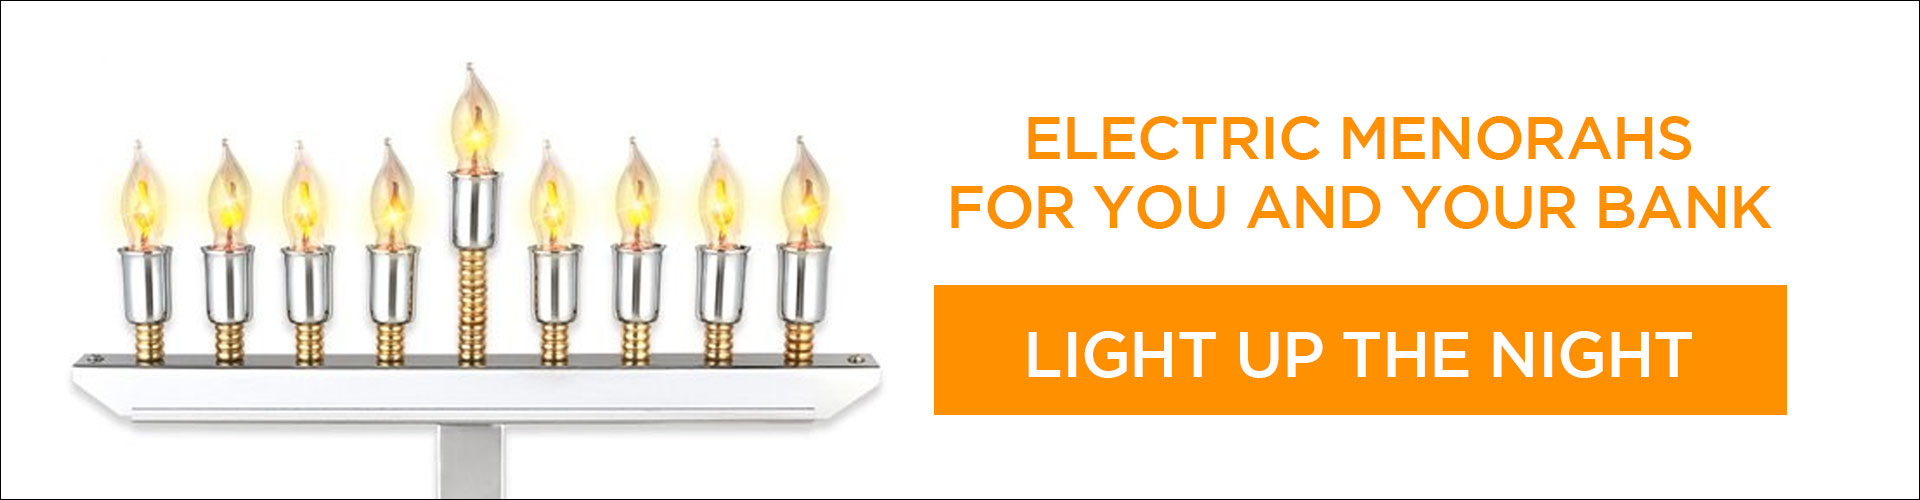 Shop Electric Menorahs